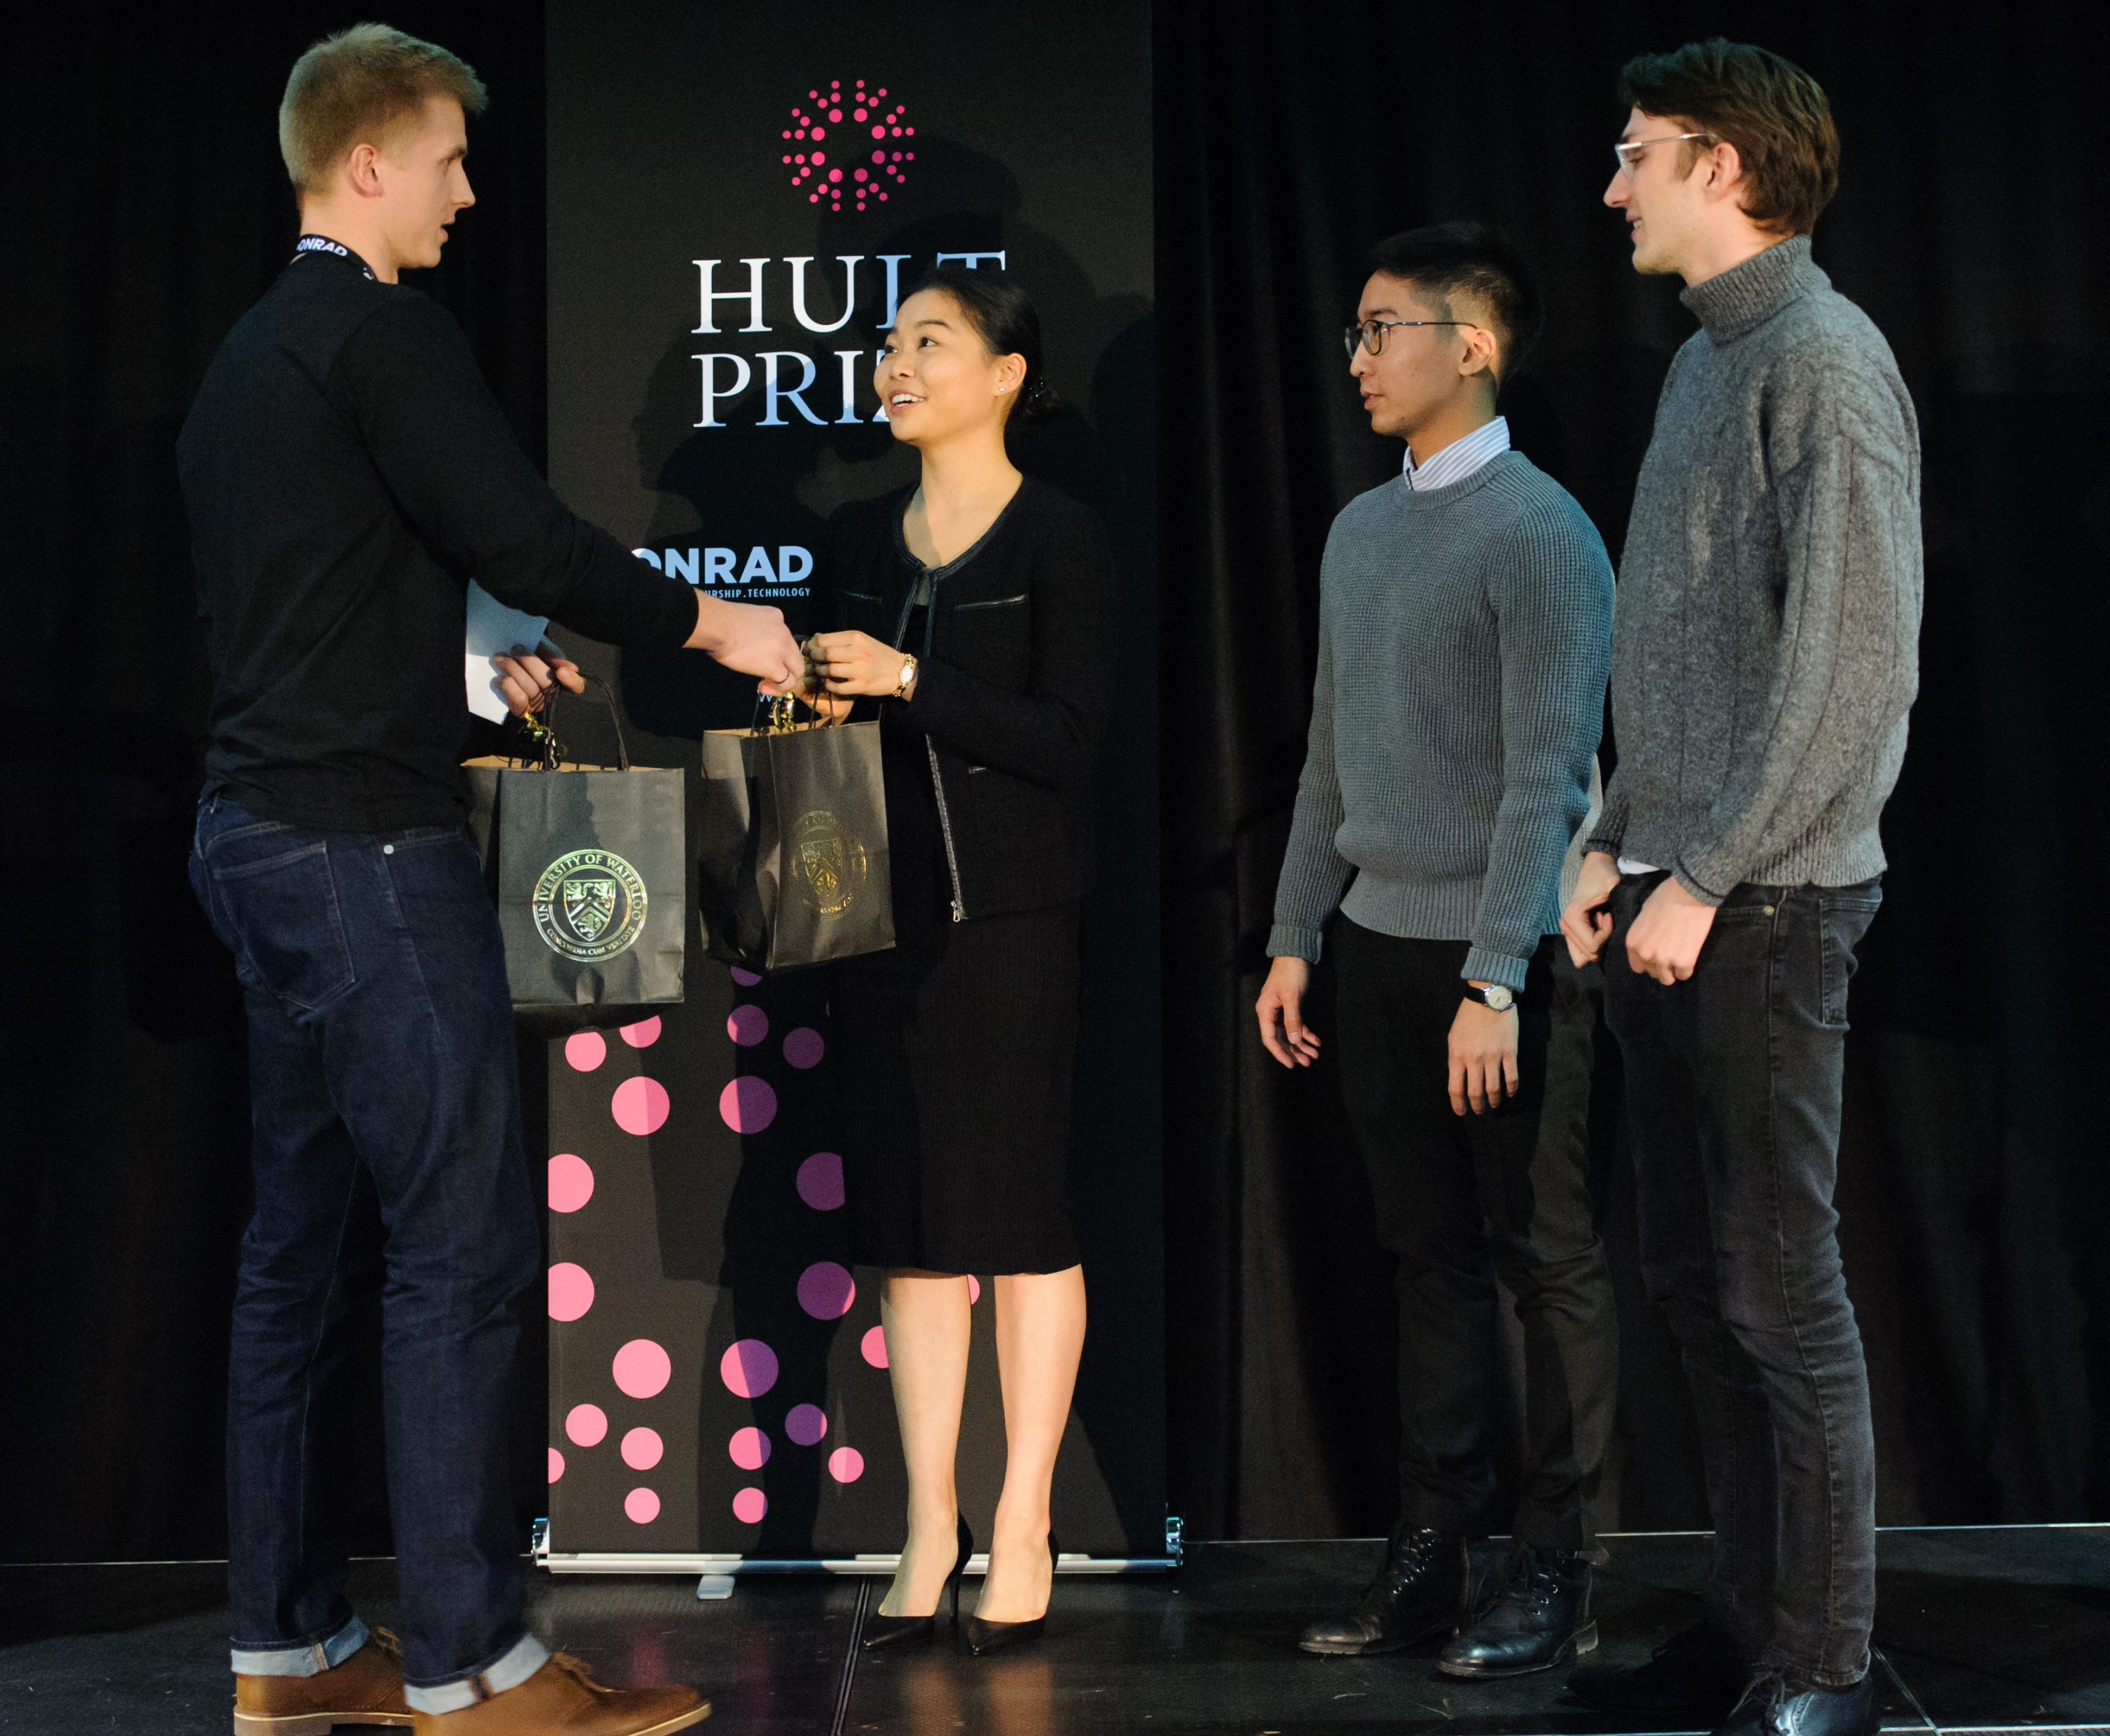 Team Epoch at the Hult Prize